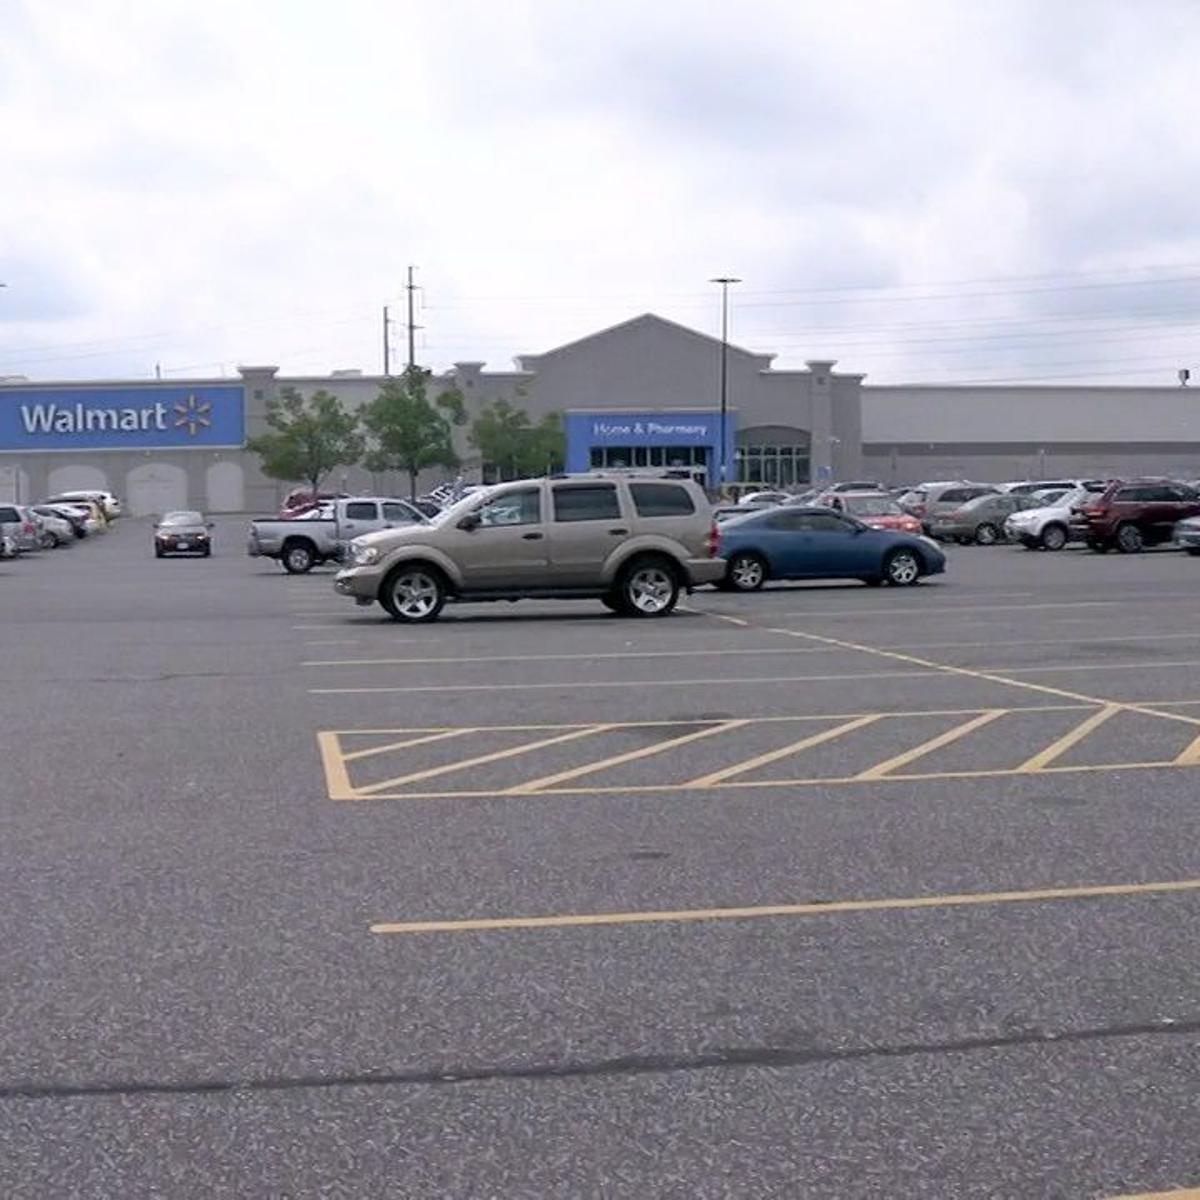 Chicopee officials asking local Wal-Mart to hire detail